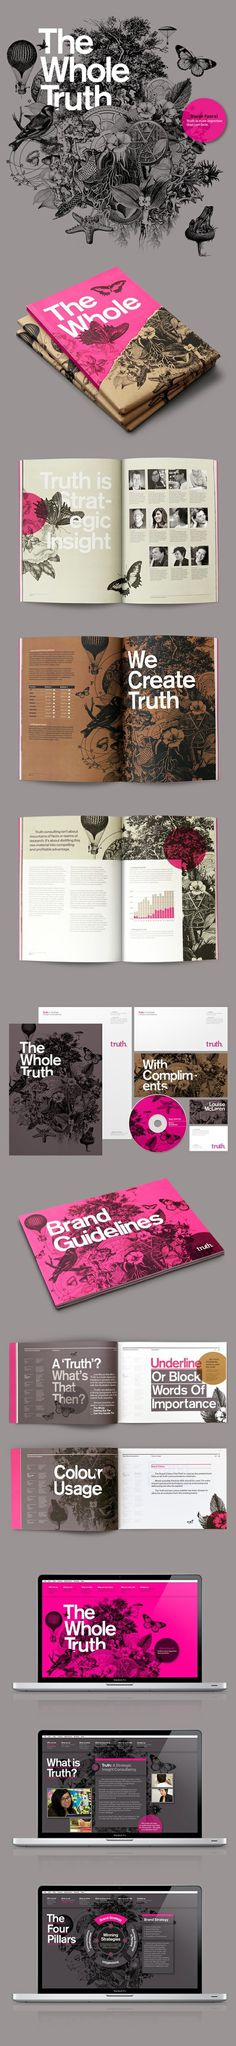 Truth Branding by Socio Design #design